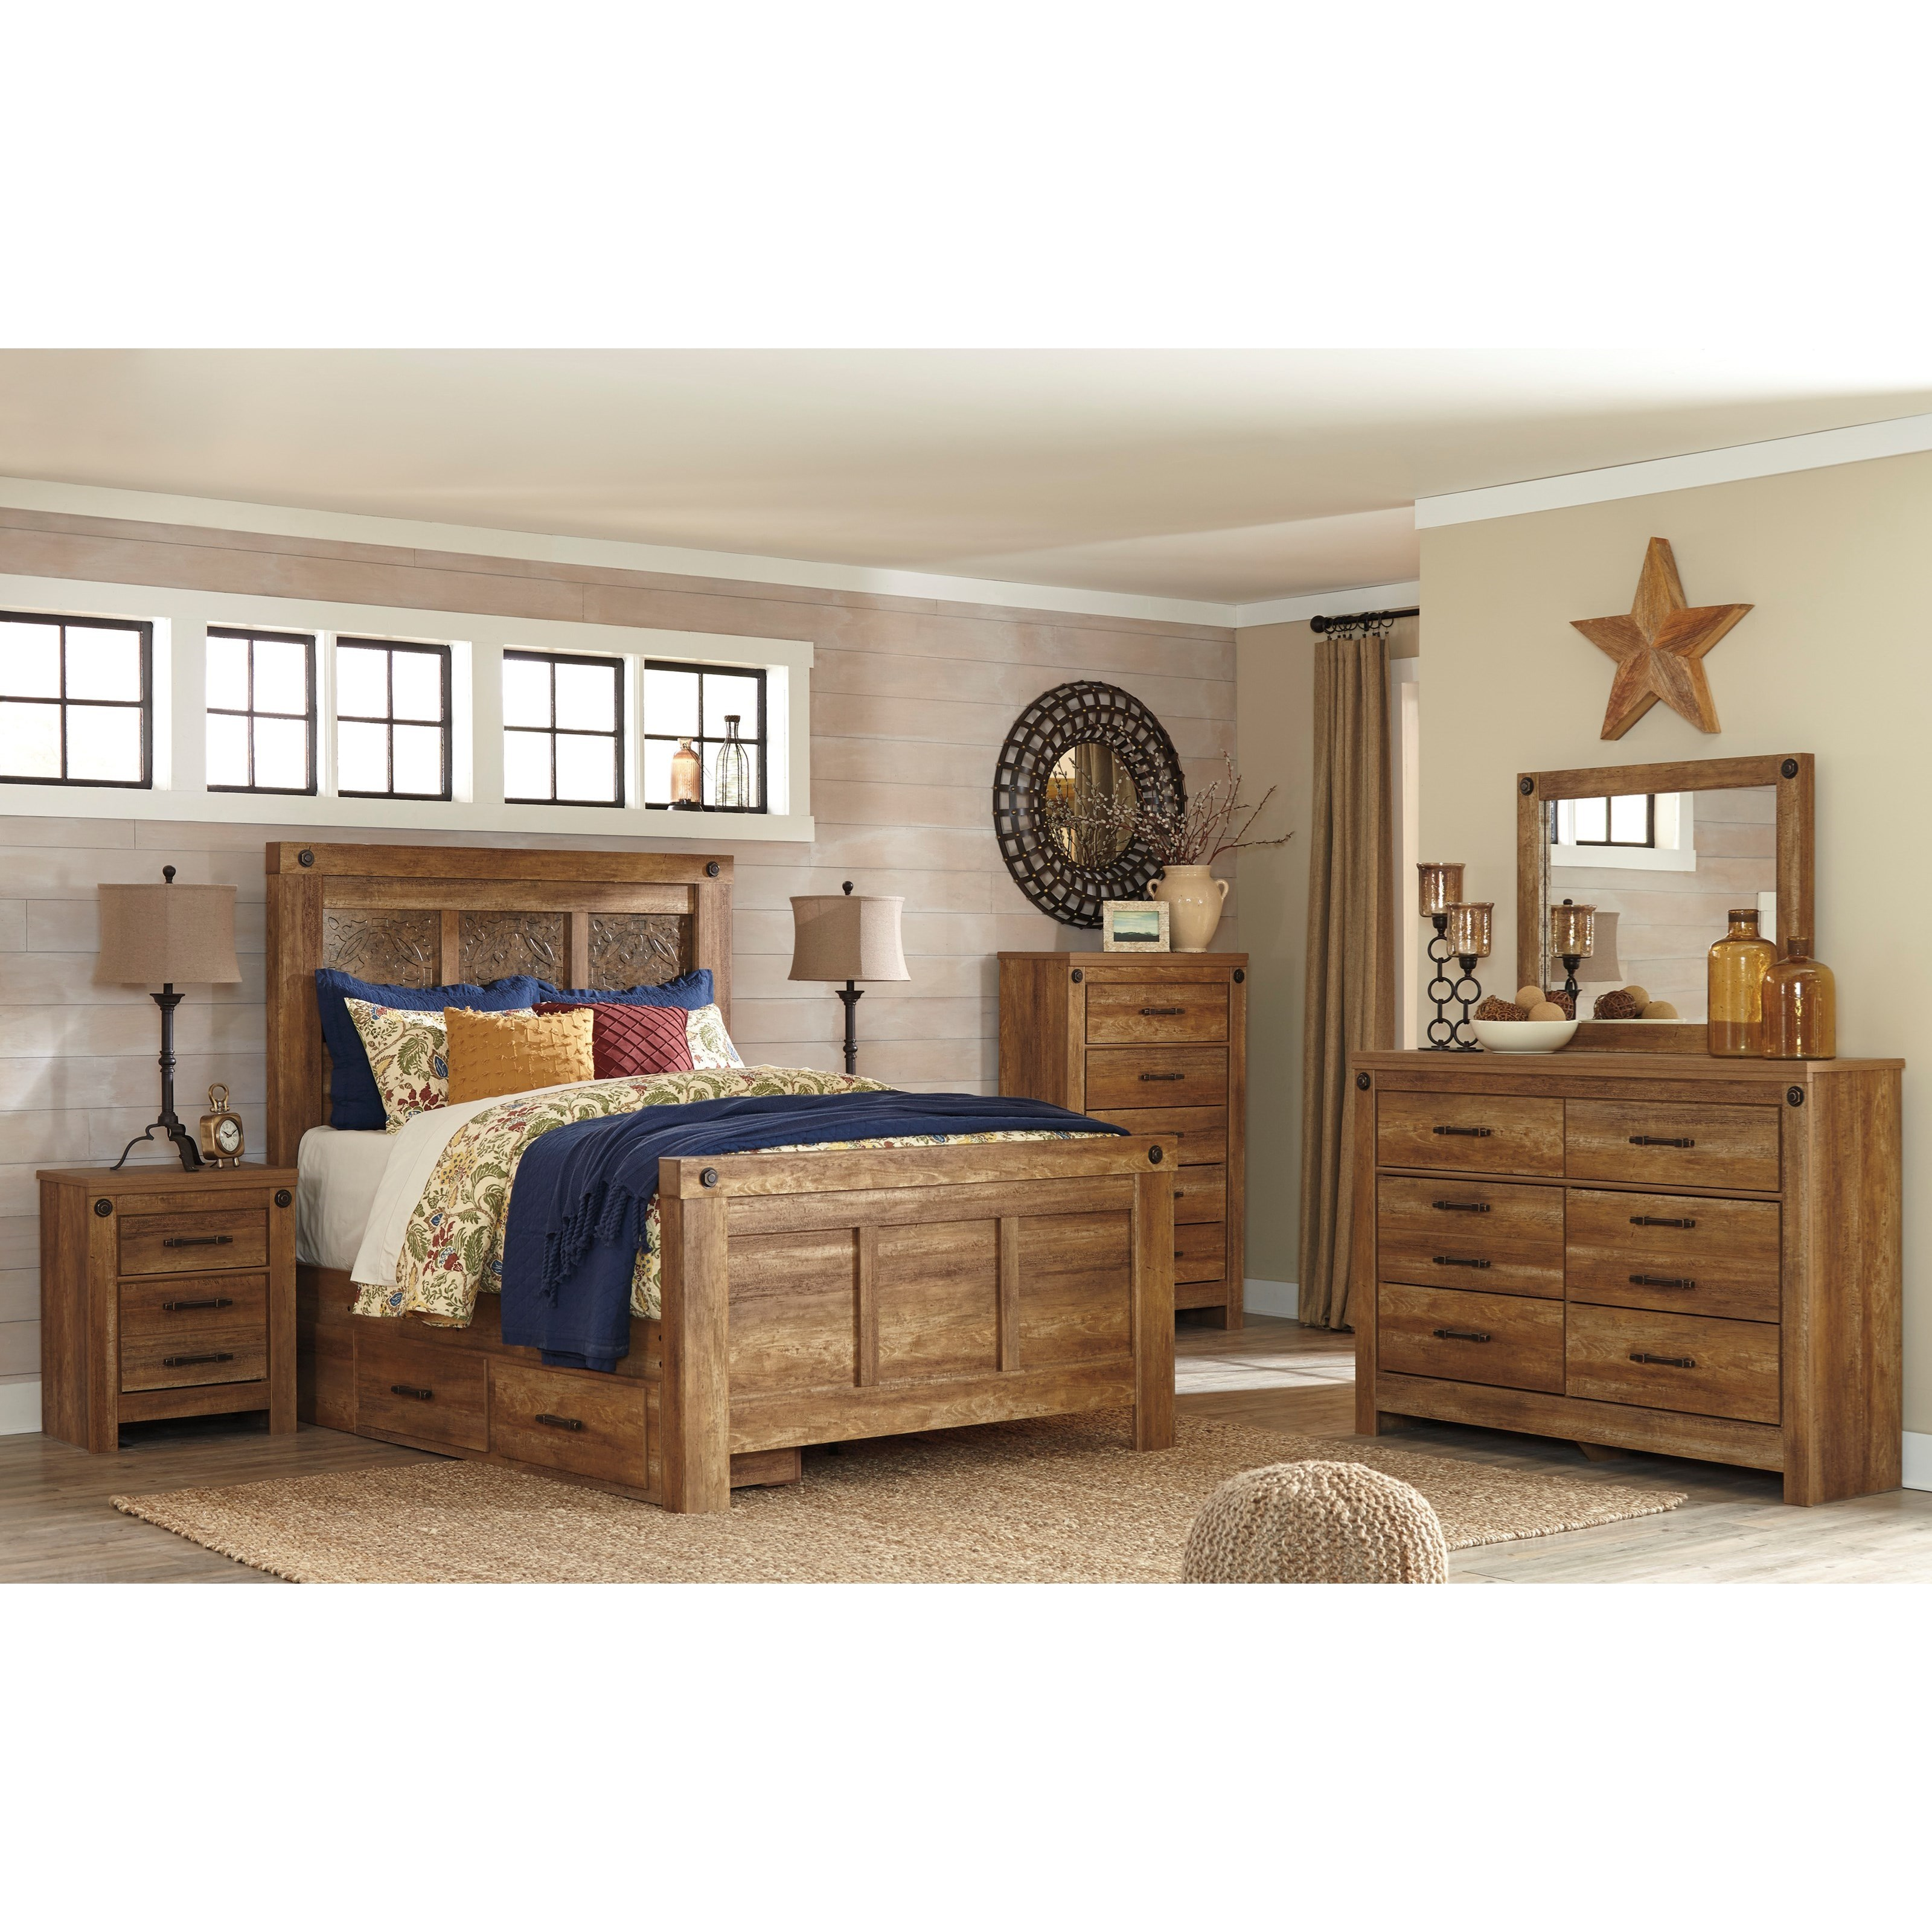 Signature Design by Ashley Ladimier Queen Bedroom Group - Item Number: B399 Q Bedroom Group 2